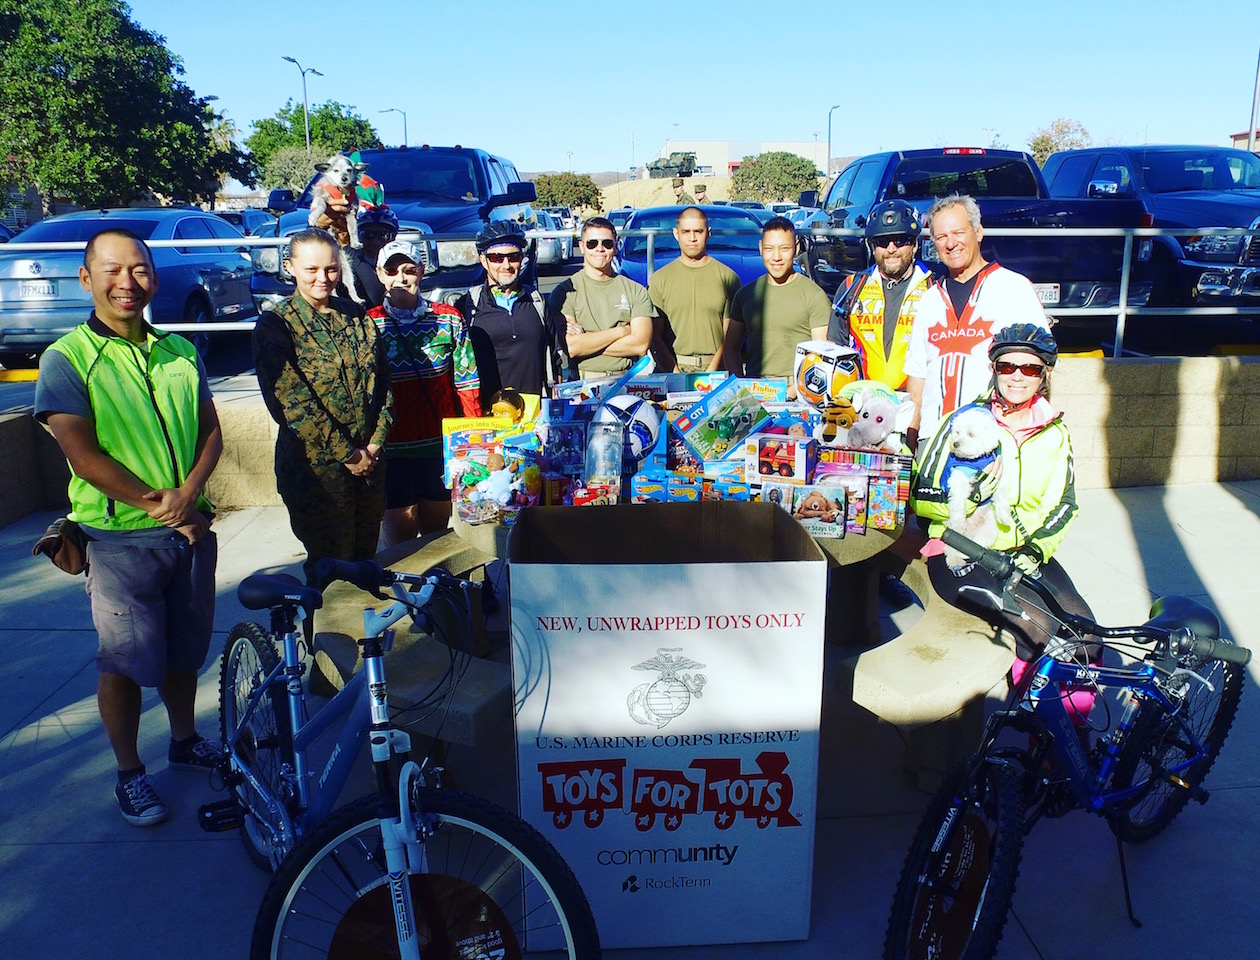 Toys For Tots Charity : Toys for tots charity ride video milestone rides